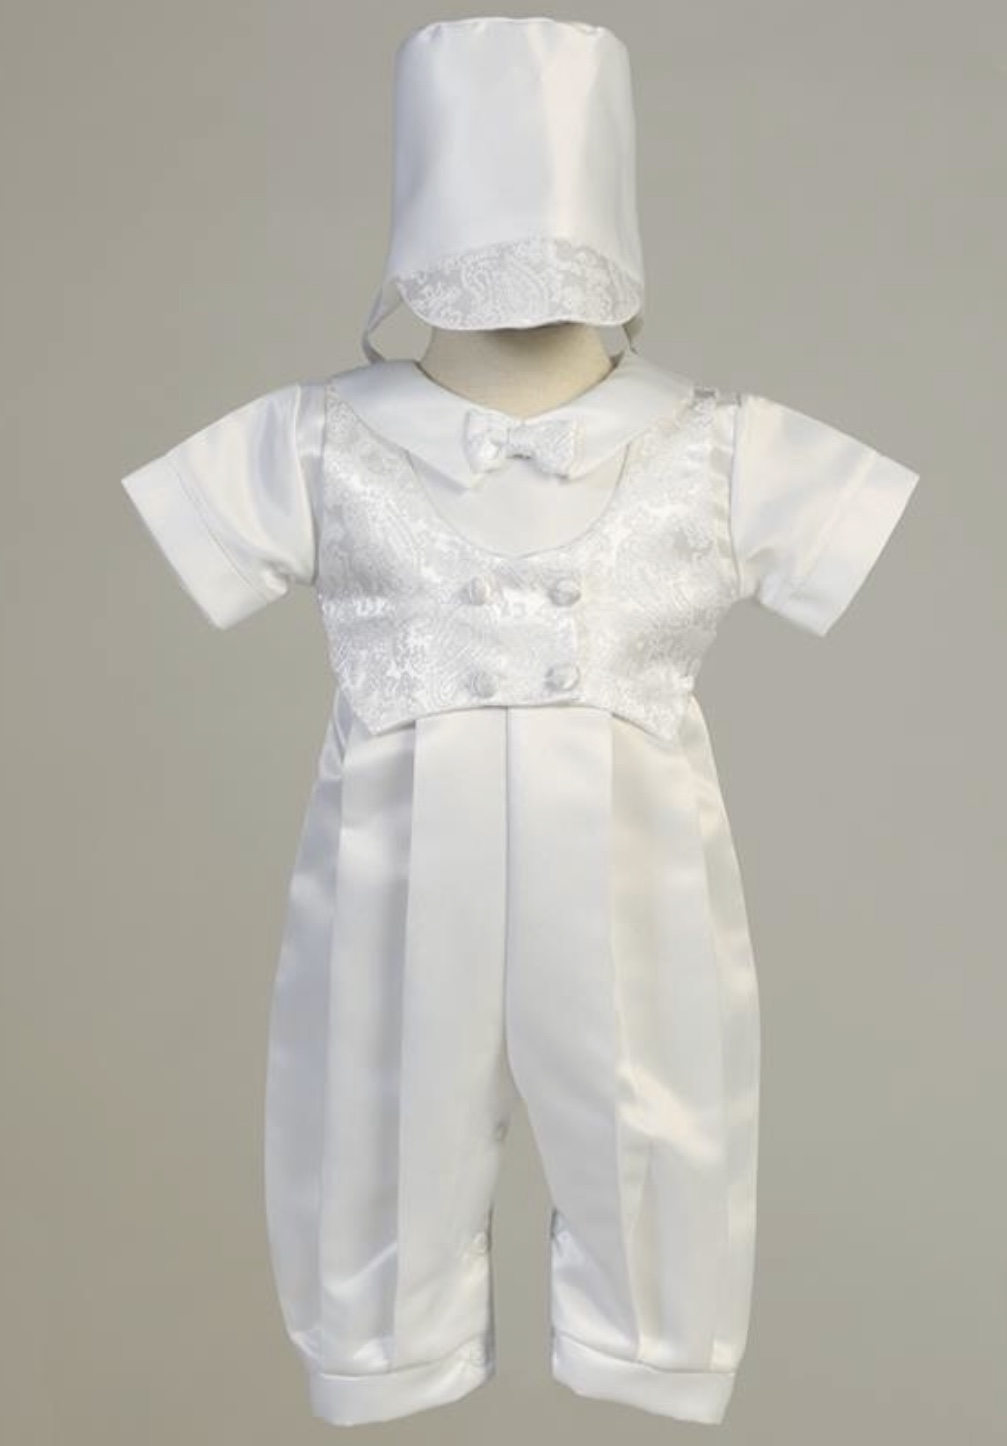 SWEA PEA & LILLI 1 PC CHRISTENING SUIT WITH HAT